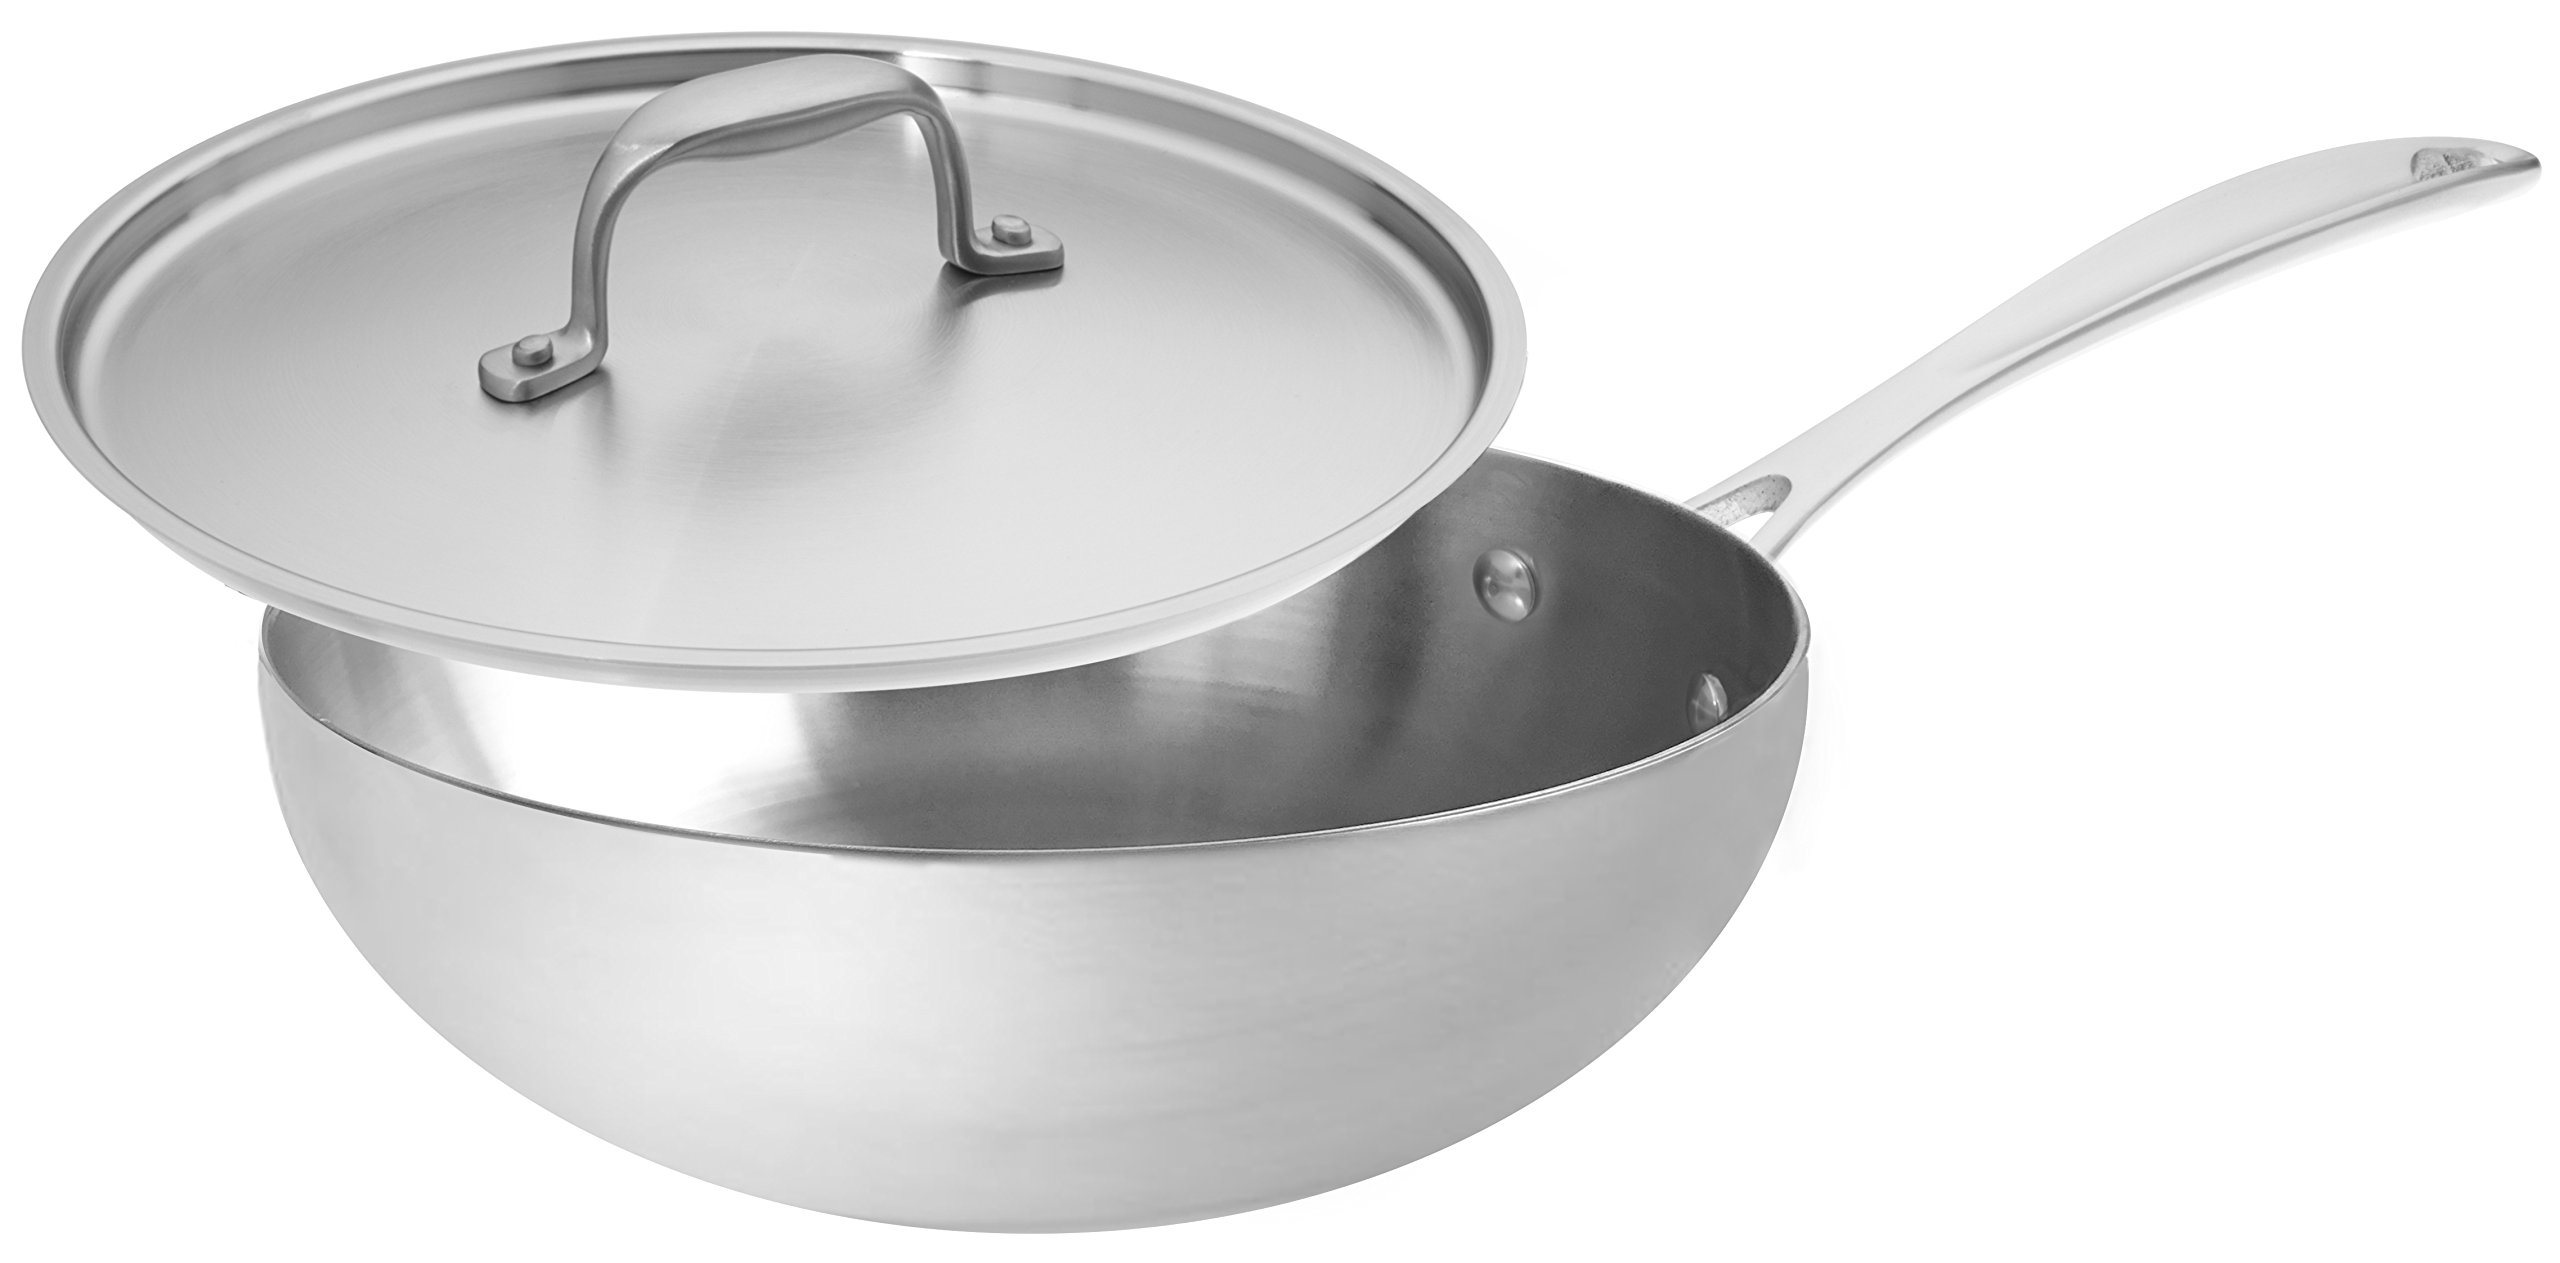 American Kitchen Cookware Premium Stainless Steel Saucier, 3 Quarts by American Kitchen Cookware